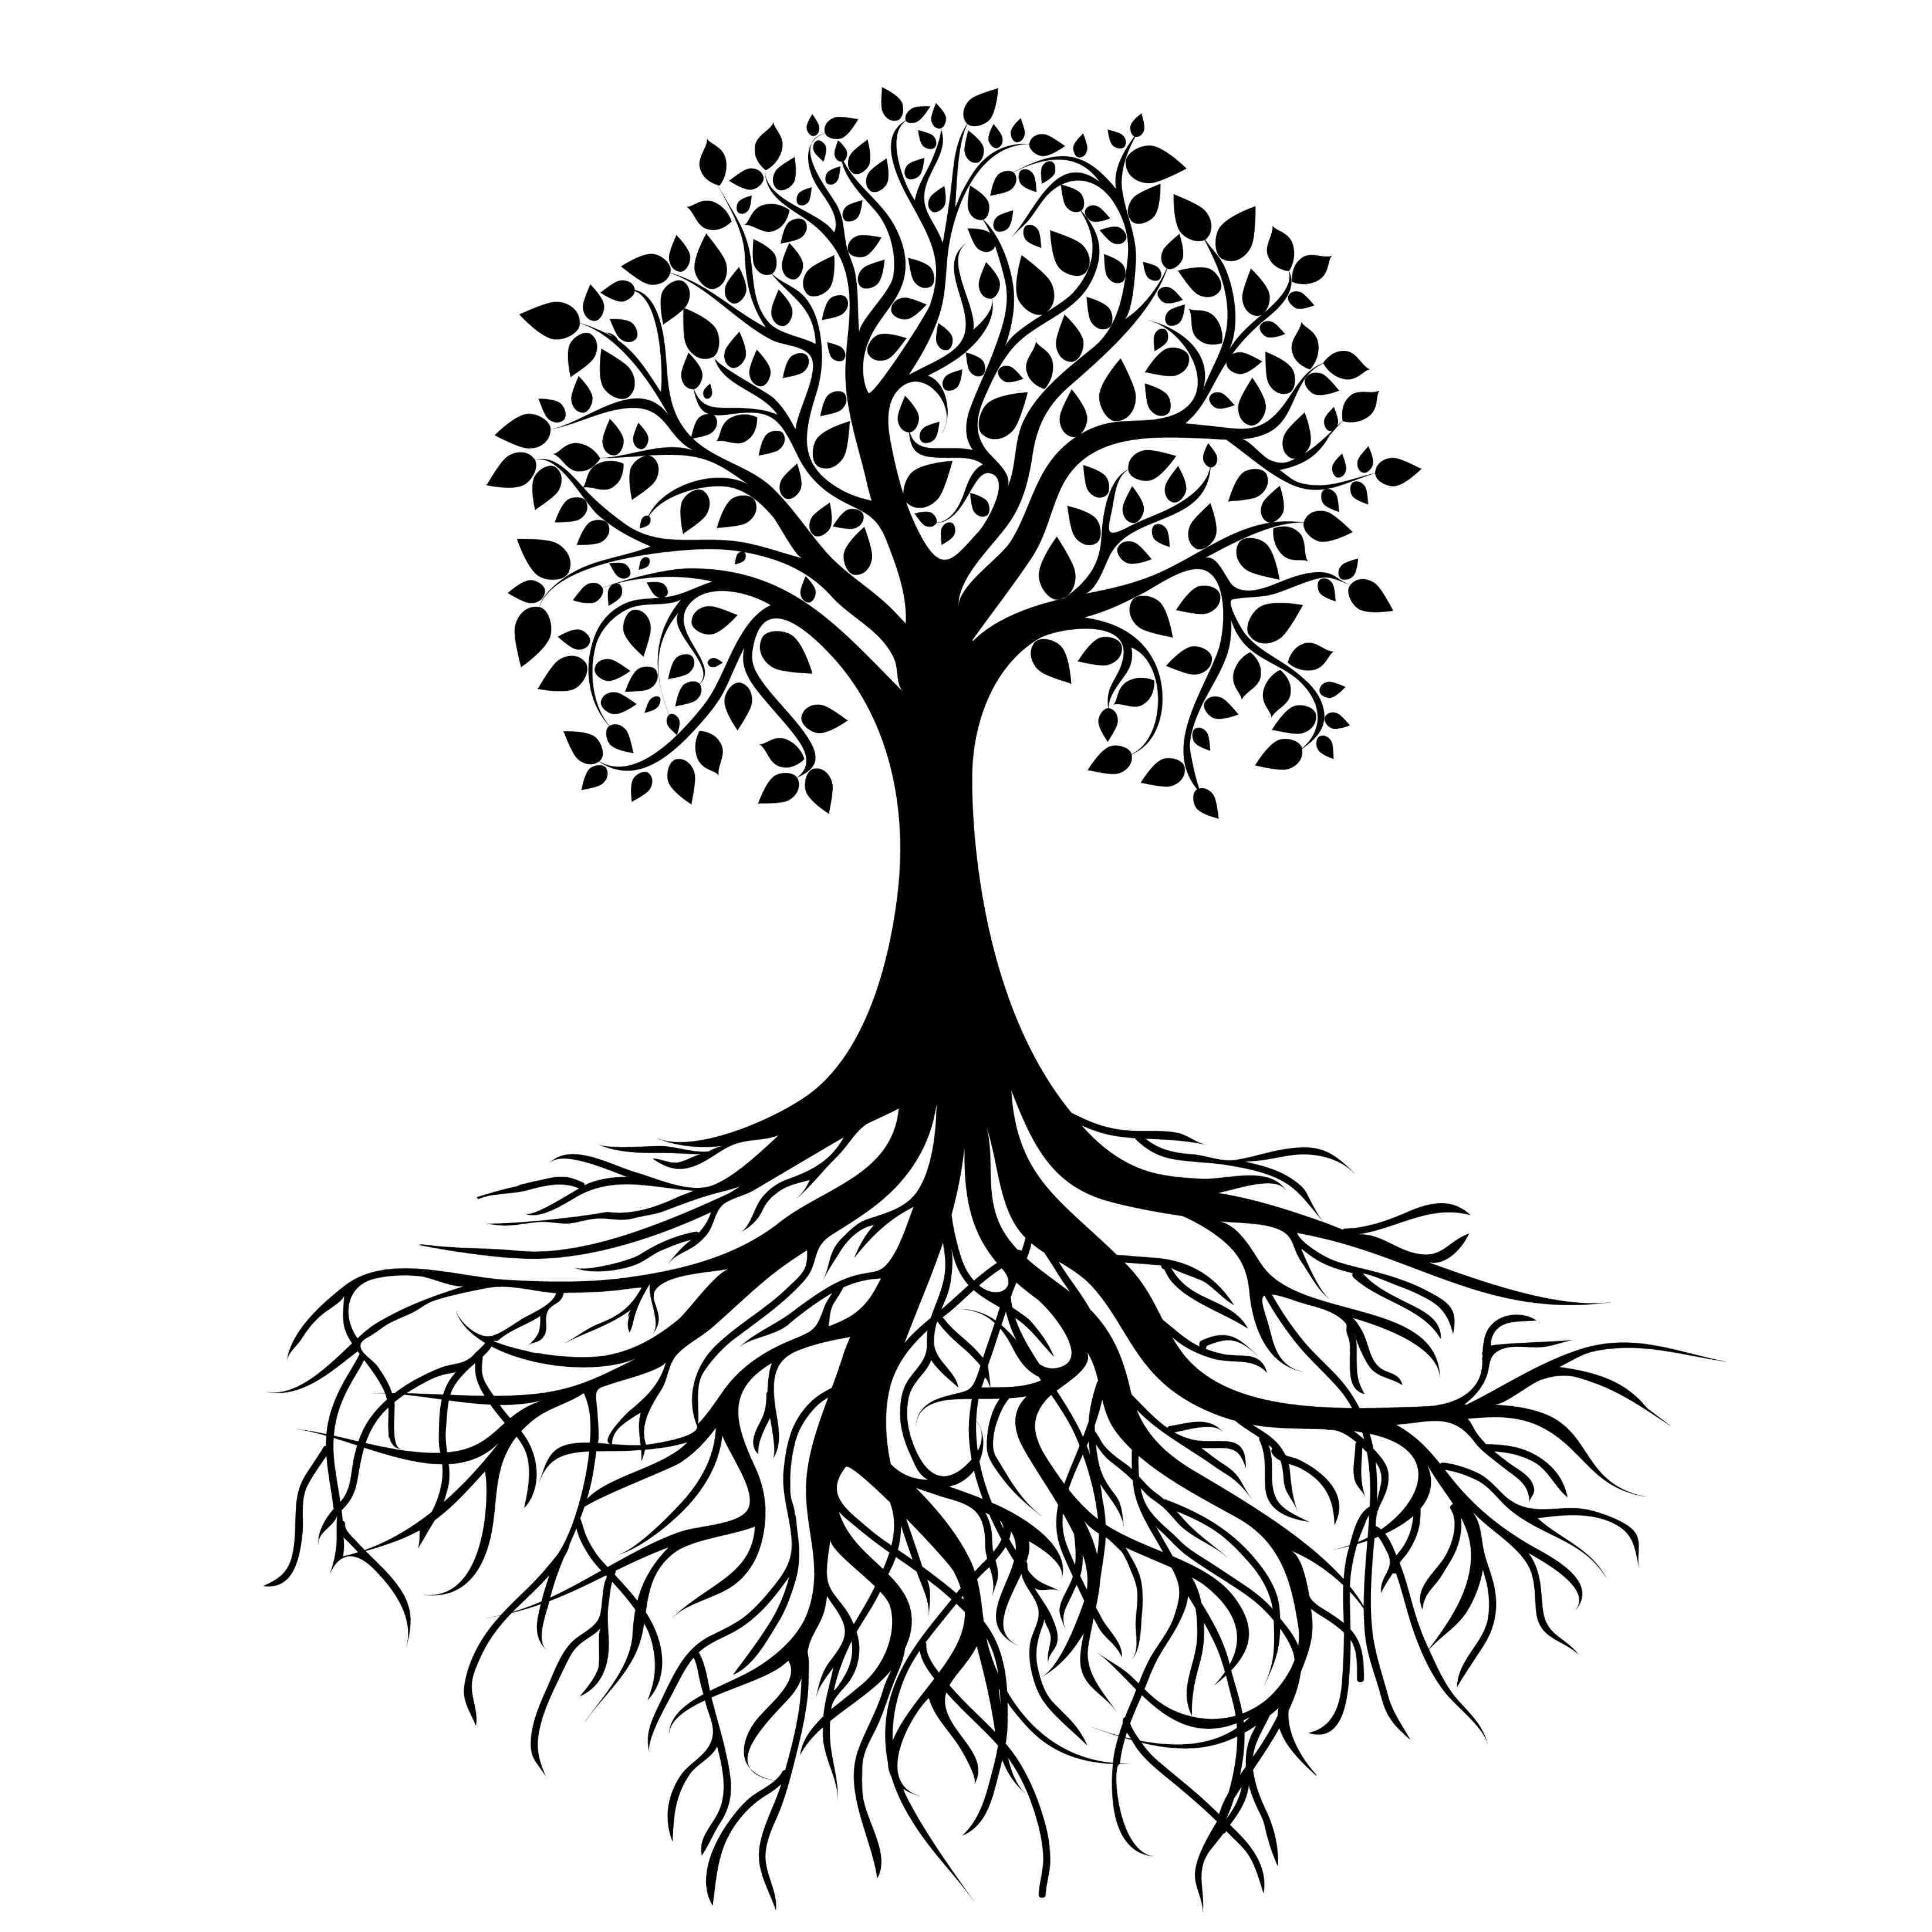 image result for black and white nature clipart have stamps will rh pinterest com transparent tree roots clip art transparent tree roots clip art